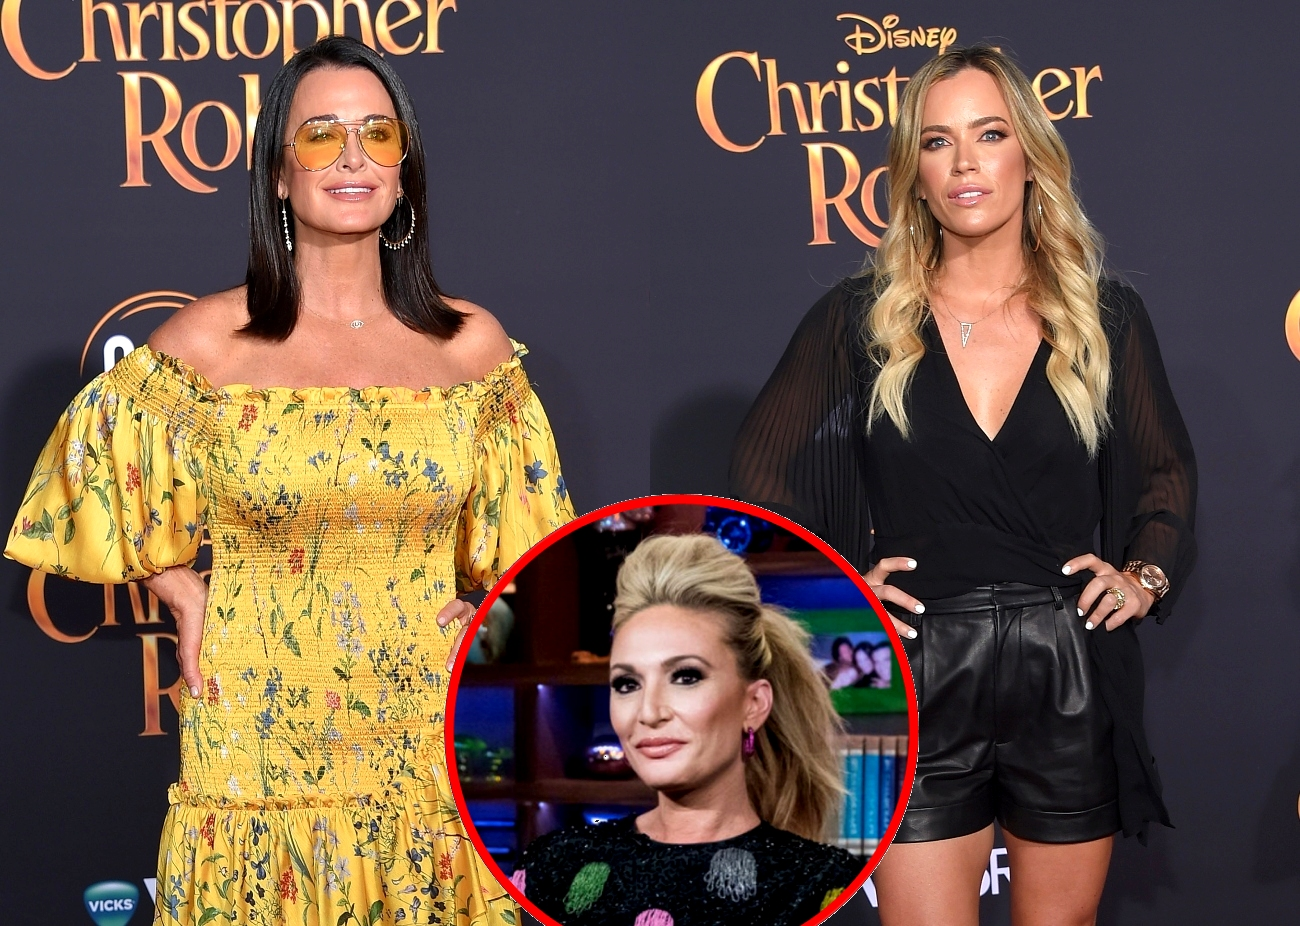 RHOBH's Kyle Richards And Teddi Mellencamp Clap Back At Kate Chastain For Mom-Shaming Tweet